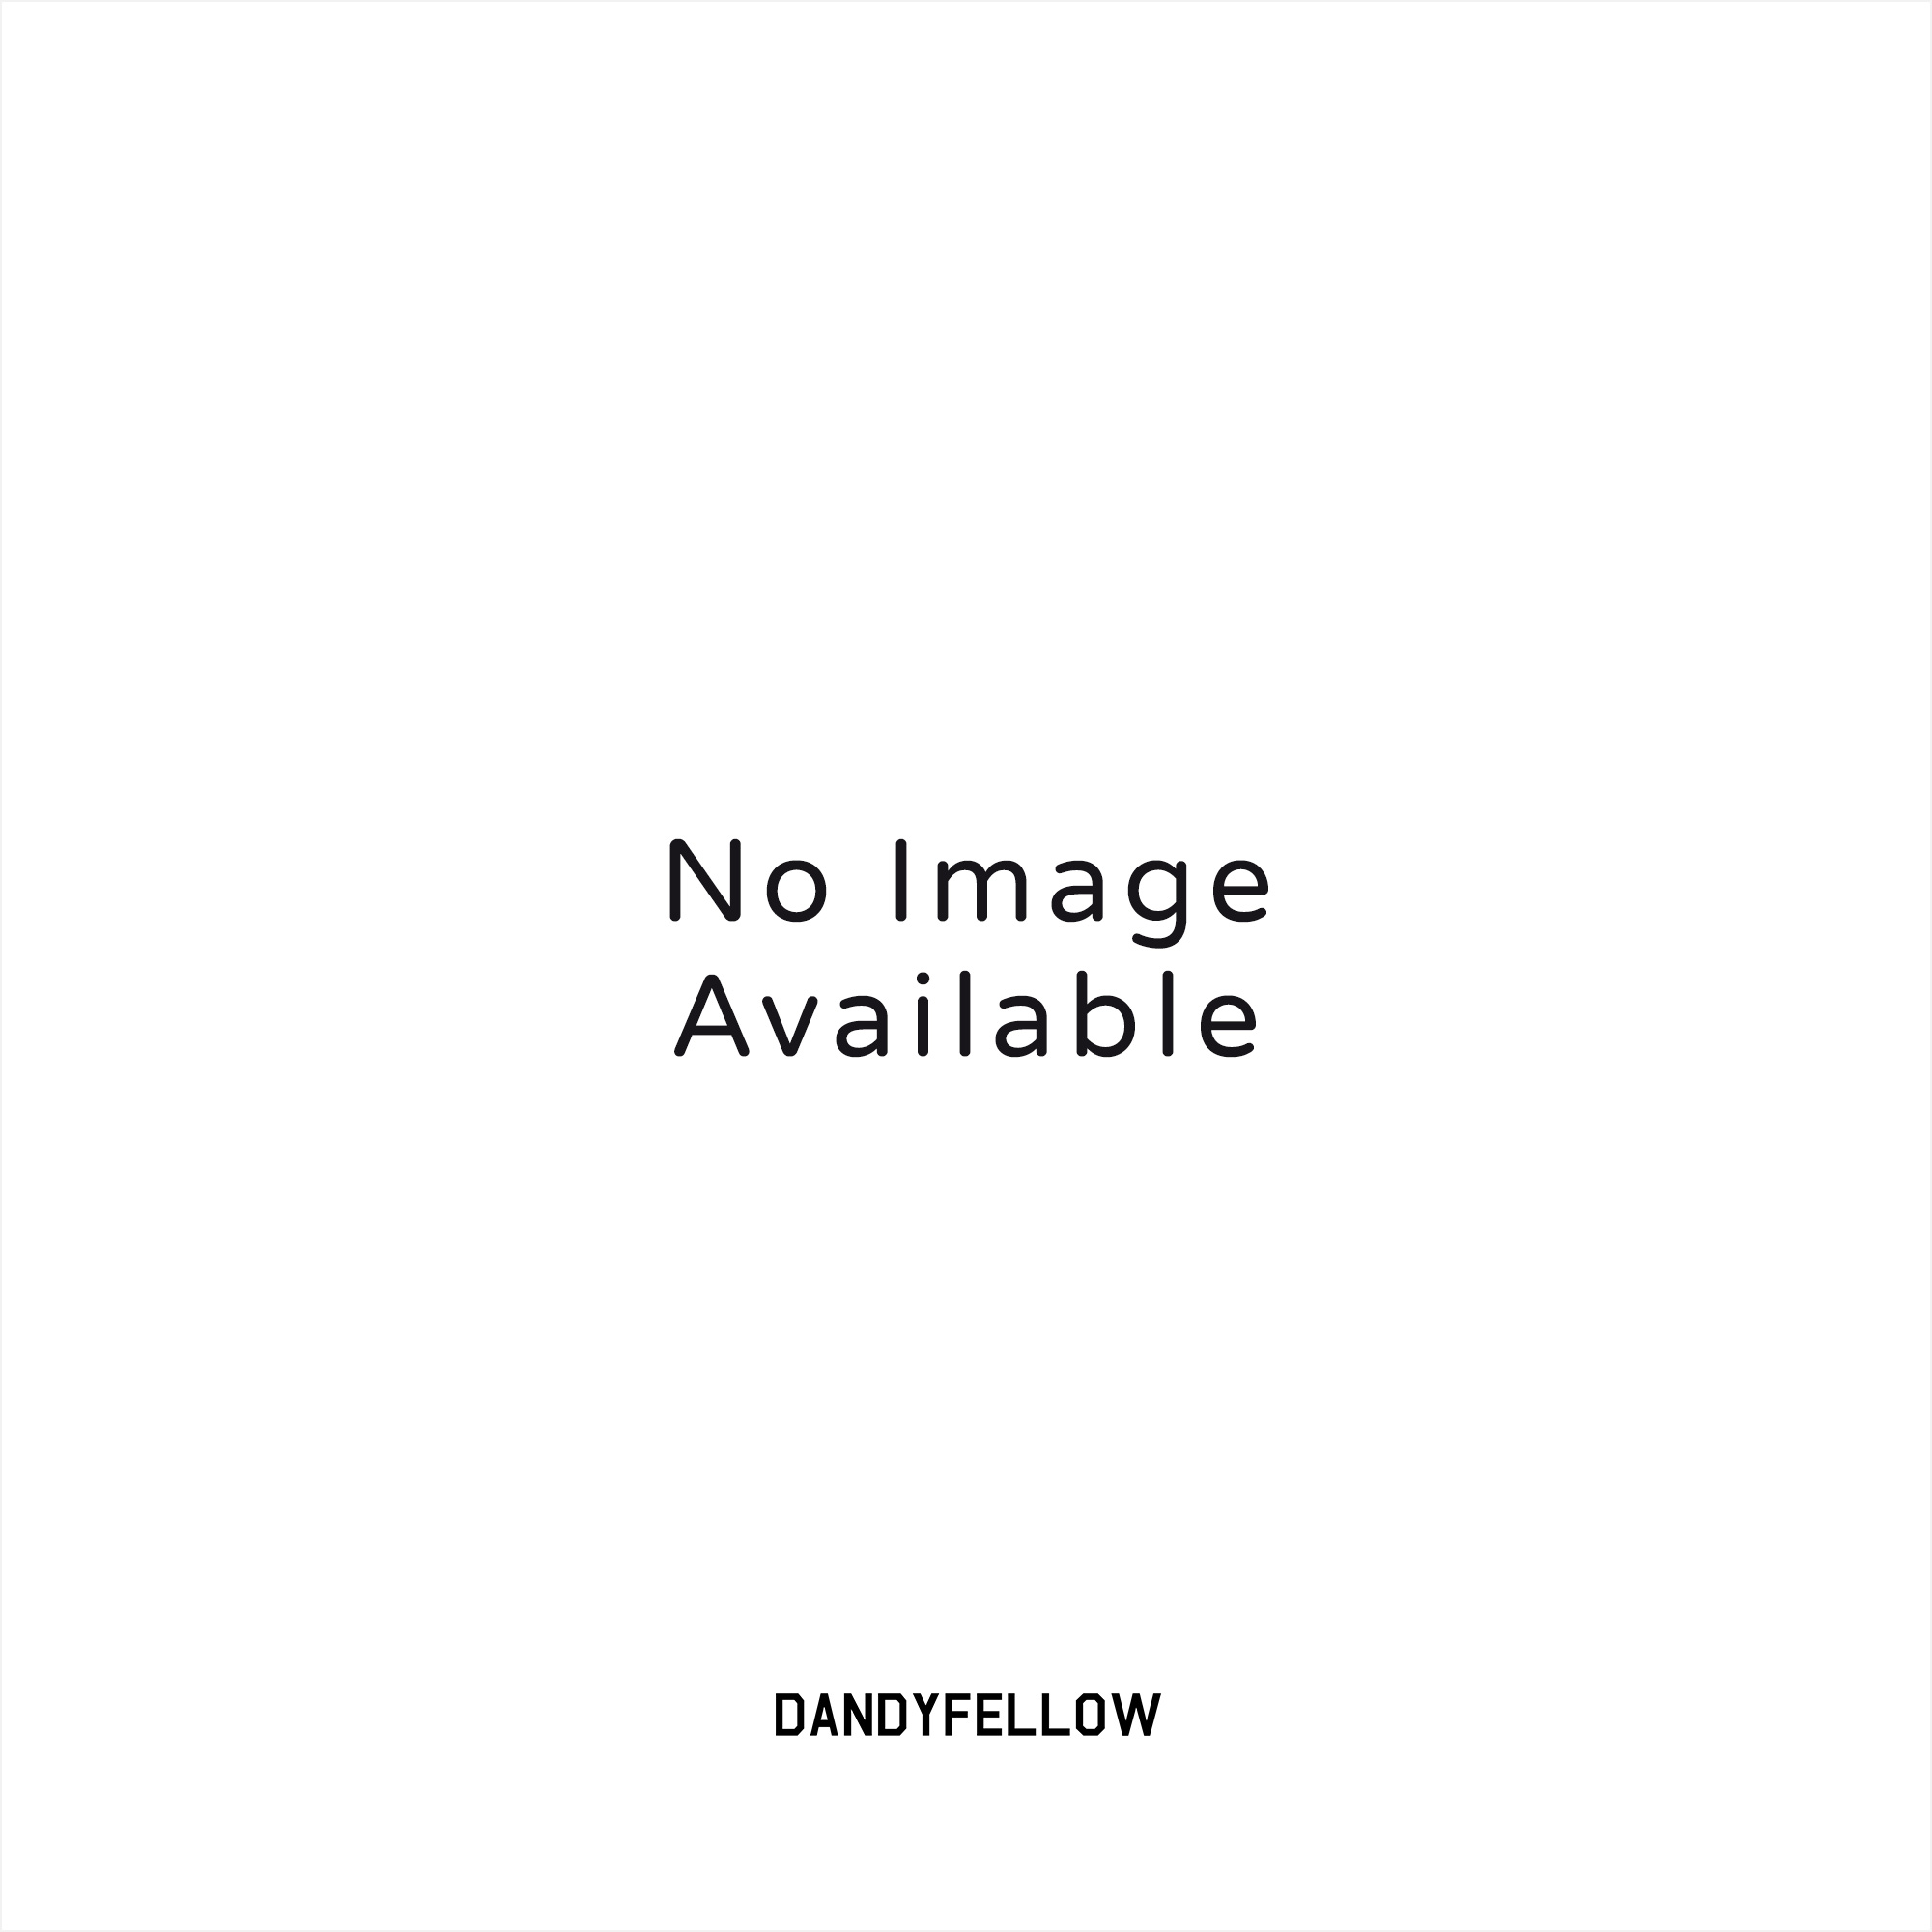 Hugo Boss Dandy Moccasin Medium Blue Shoe 50330388